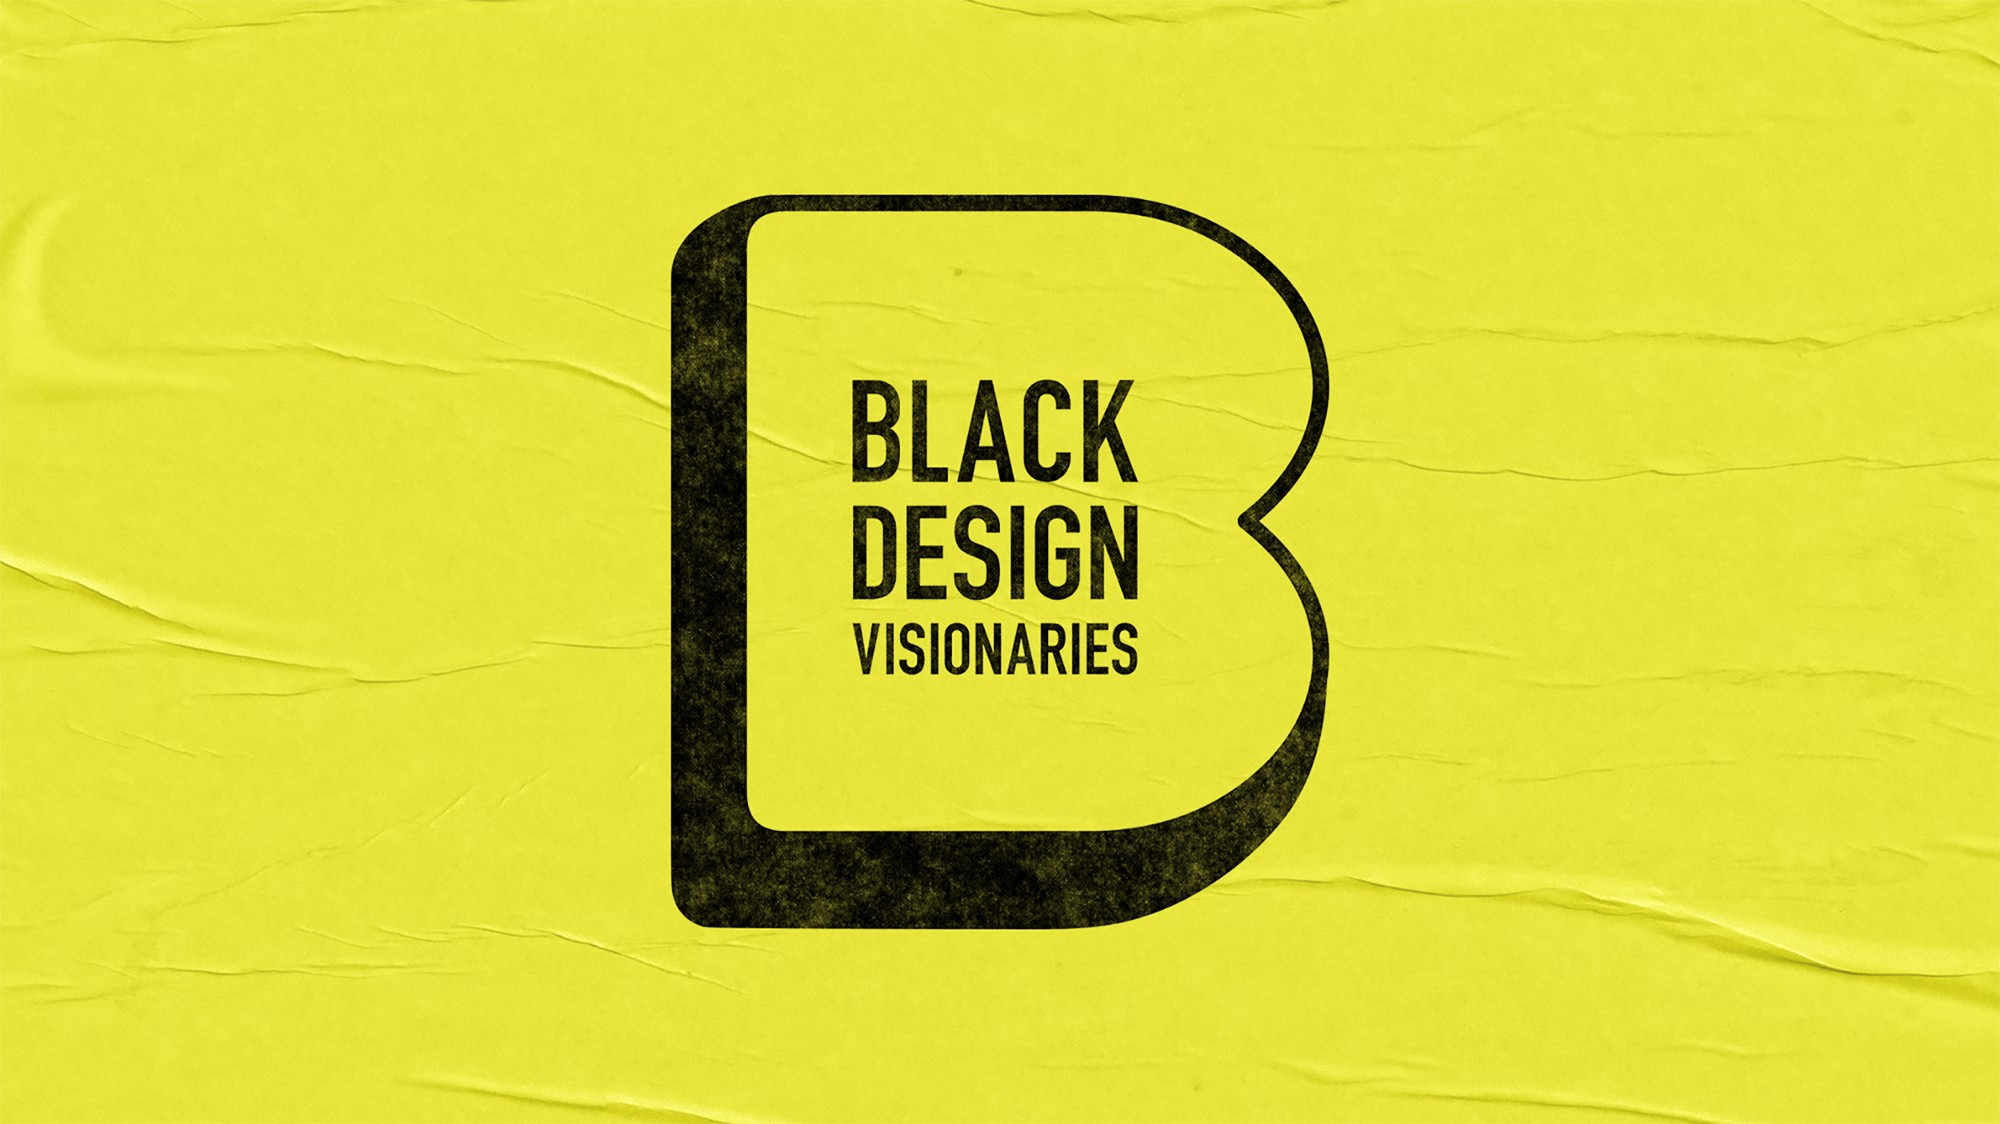 """A black letter """"B"""" encloses the words """"Black Design Visionaries"""" on a yellow background."""